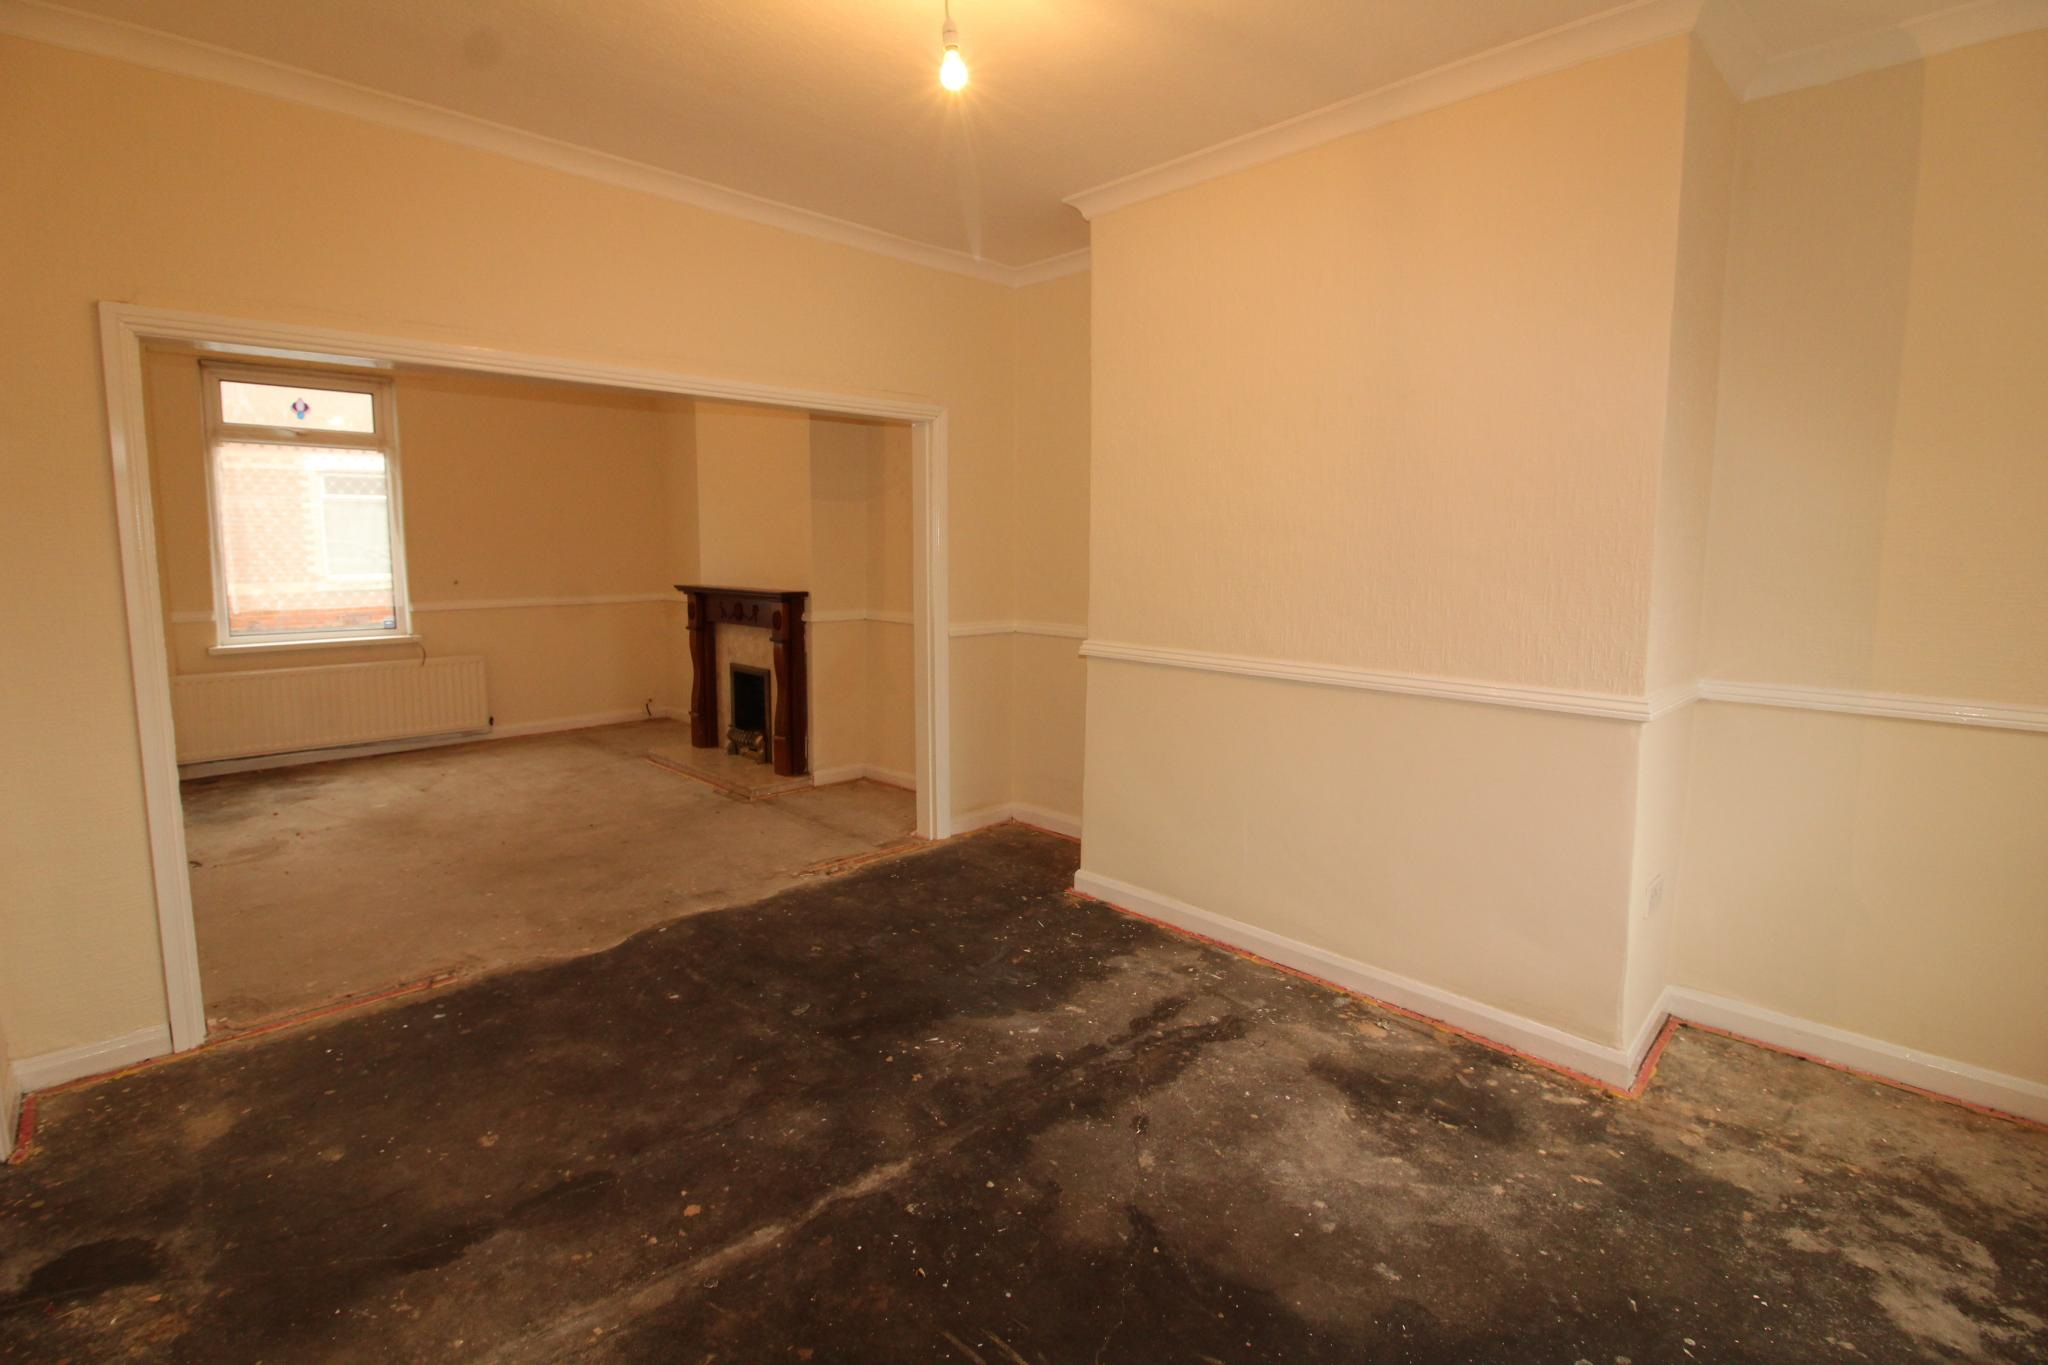 2 Bedroom Mid Terraced House For Sale - Dining Room